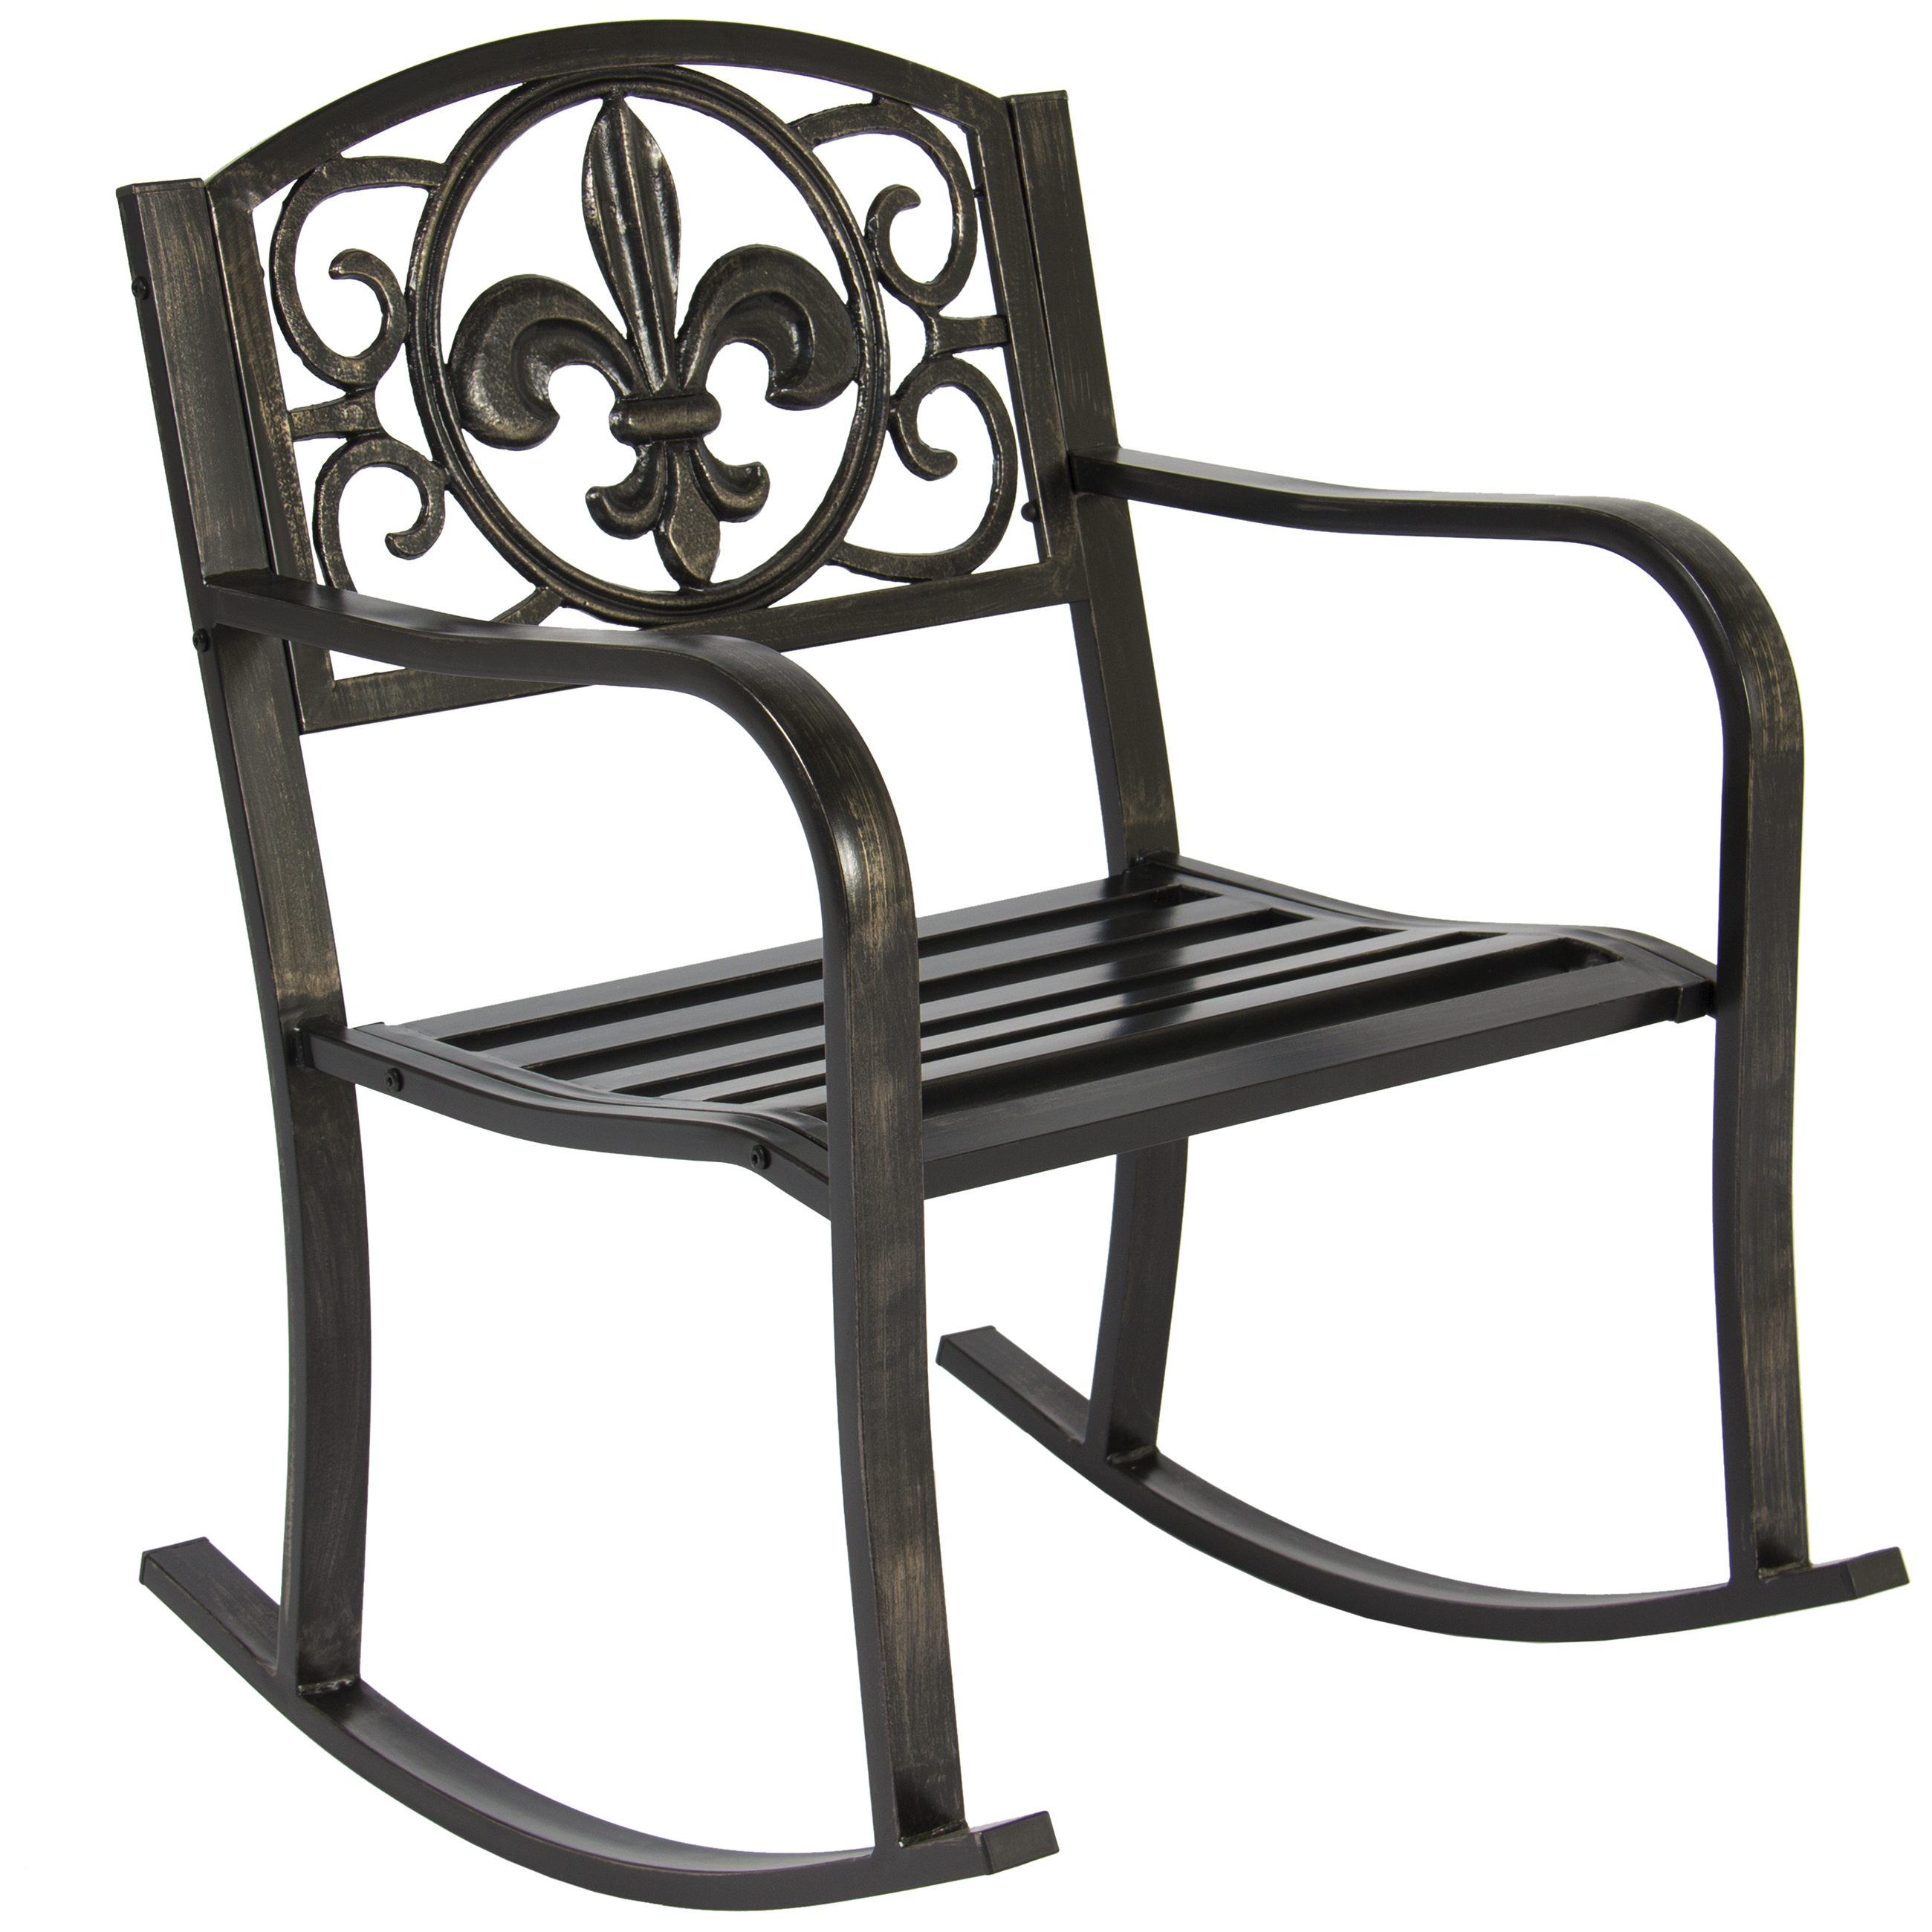 patio metal rocking chair porch seat deck outdoor backyard glider rocker walmartcom - Glider Rockers